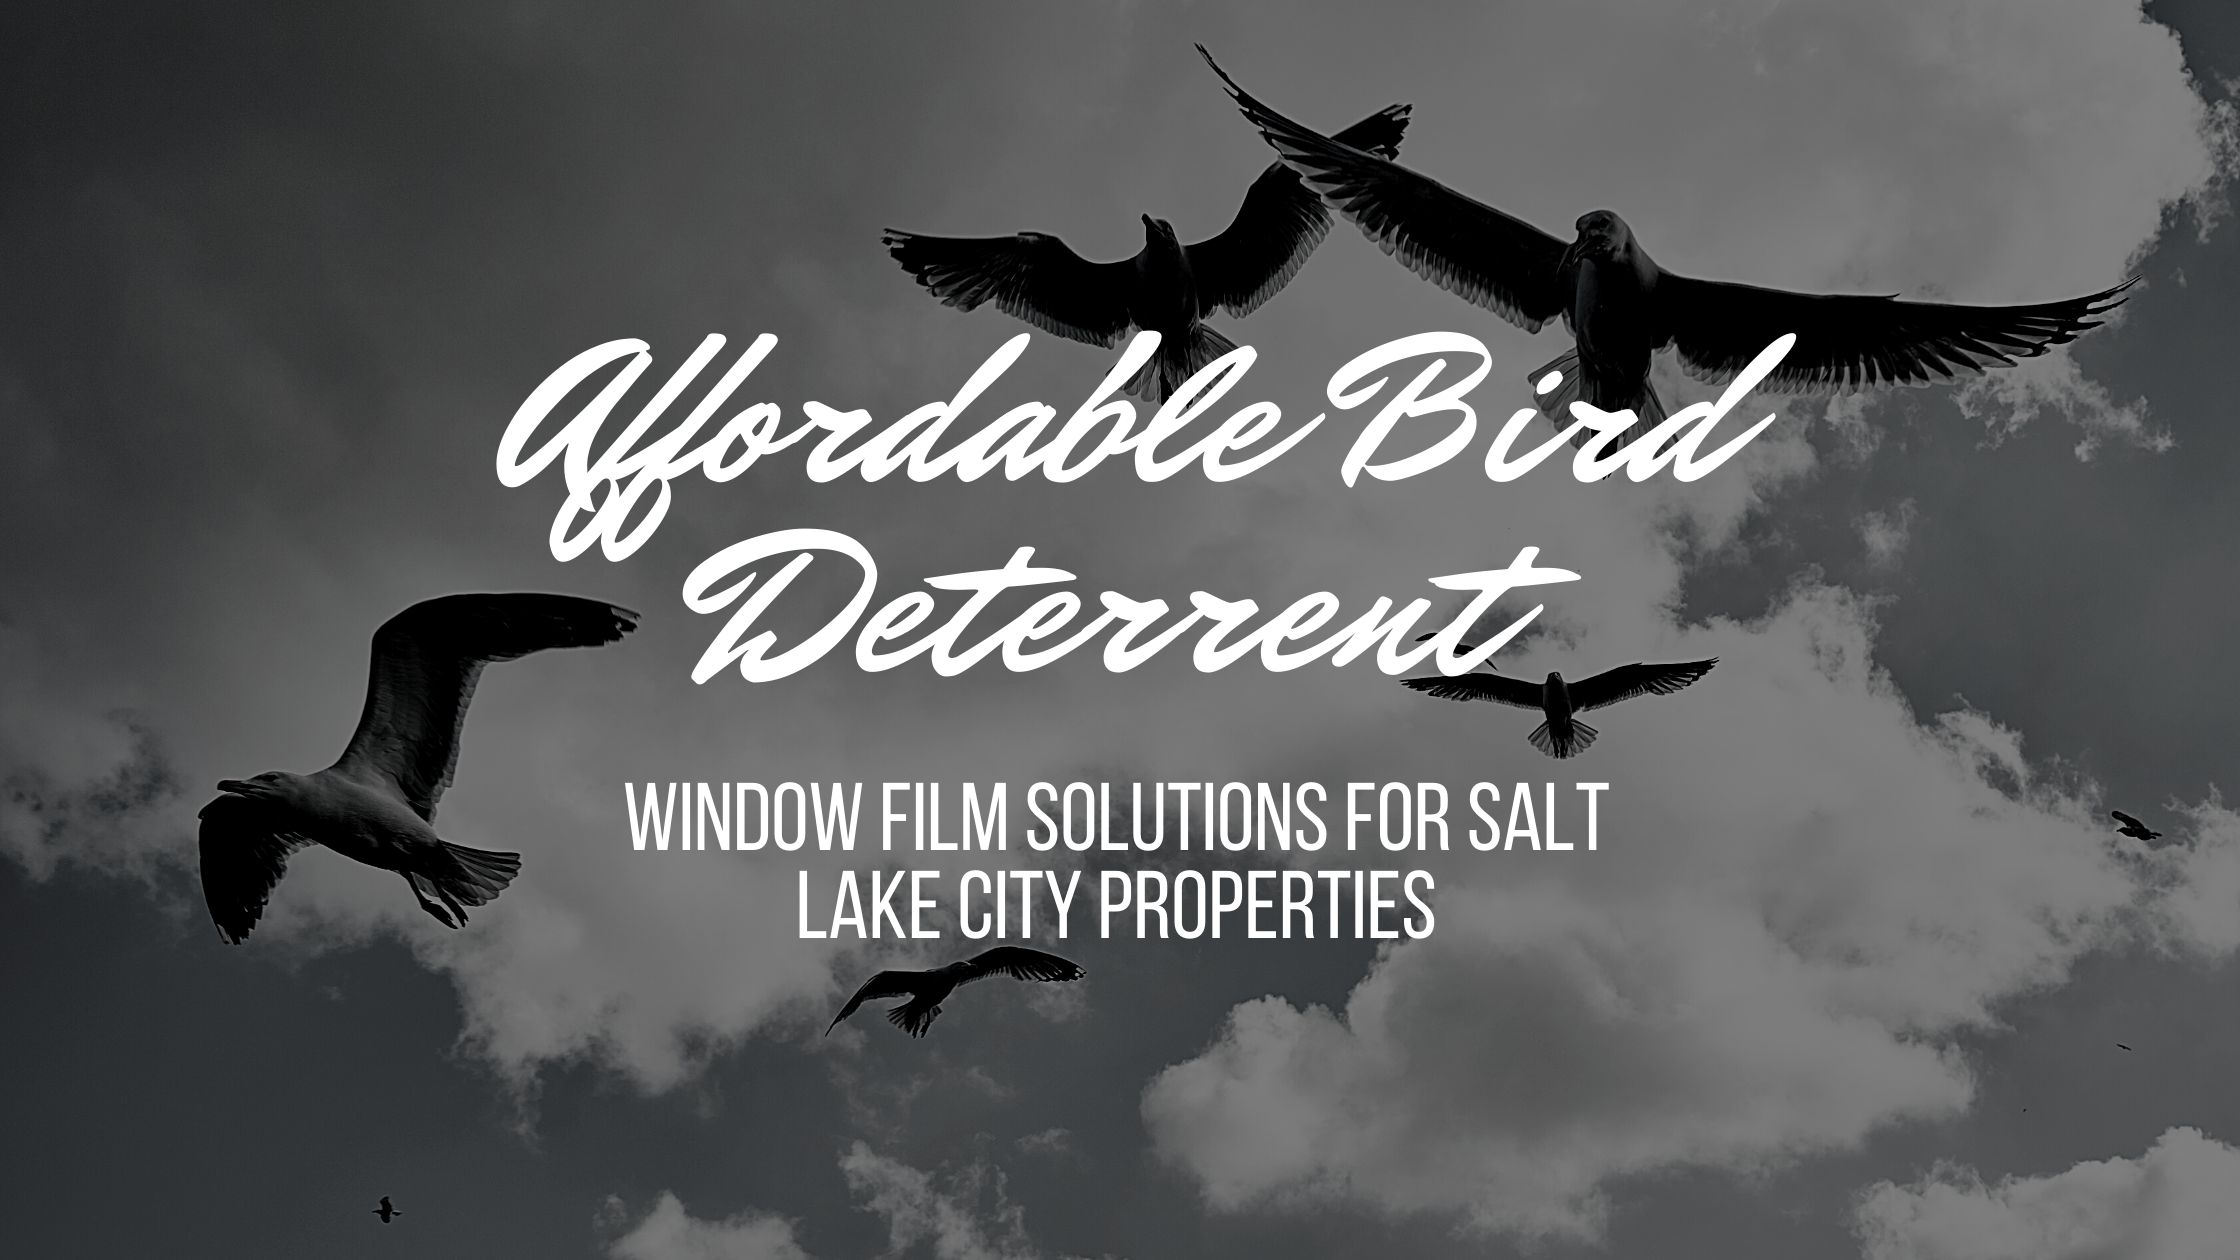 Affordable Bird Deterrent Window Film Solutions for Salt Lake City Properties